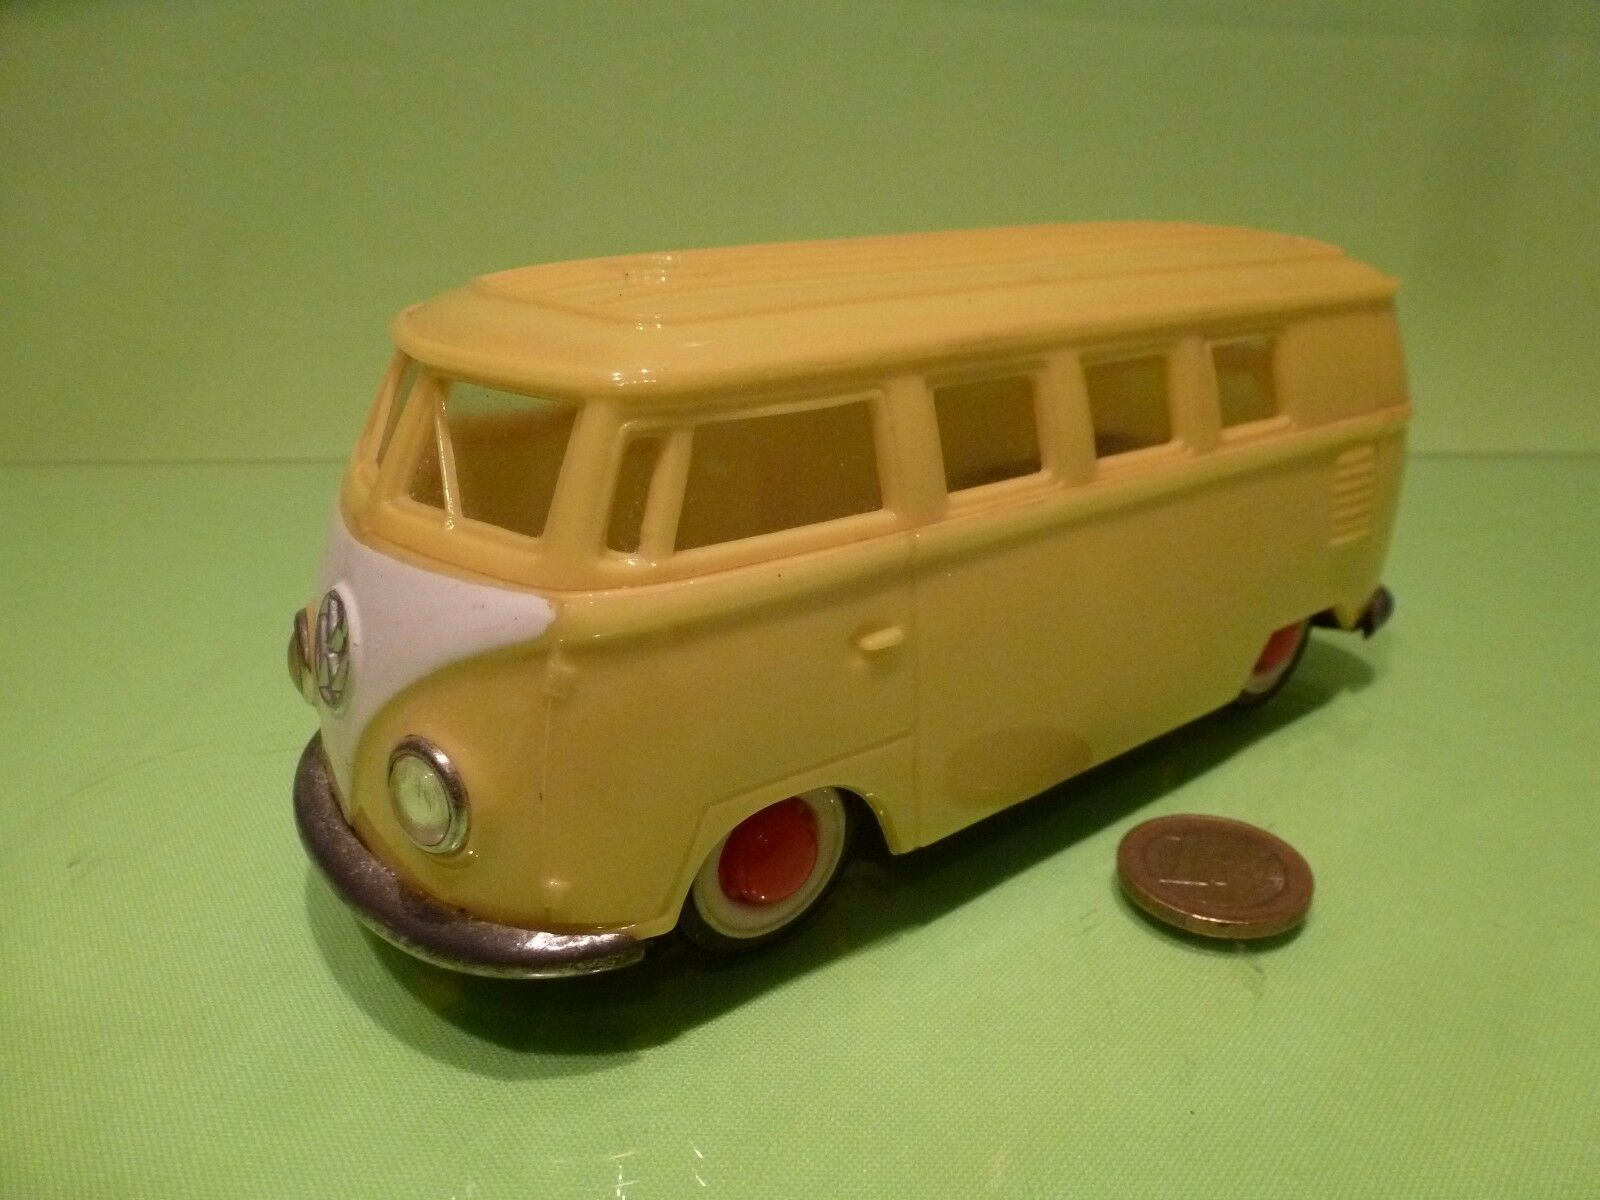 PEPE OLD VINTAGE VW VOLKSWAGEN T1 - YELLOW L17.5cm  FRICTION - GOOD COND